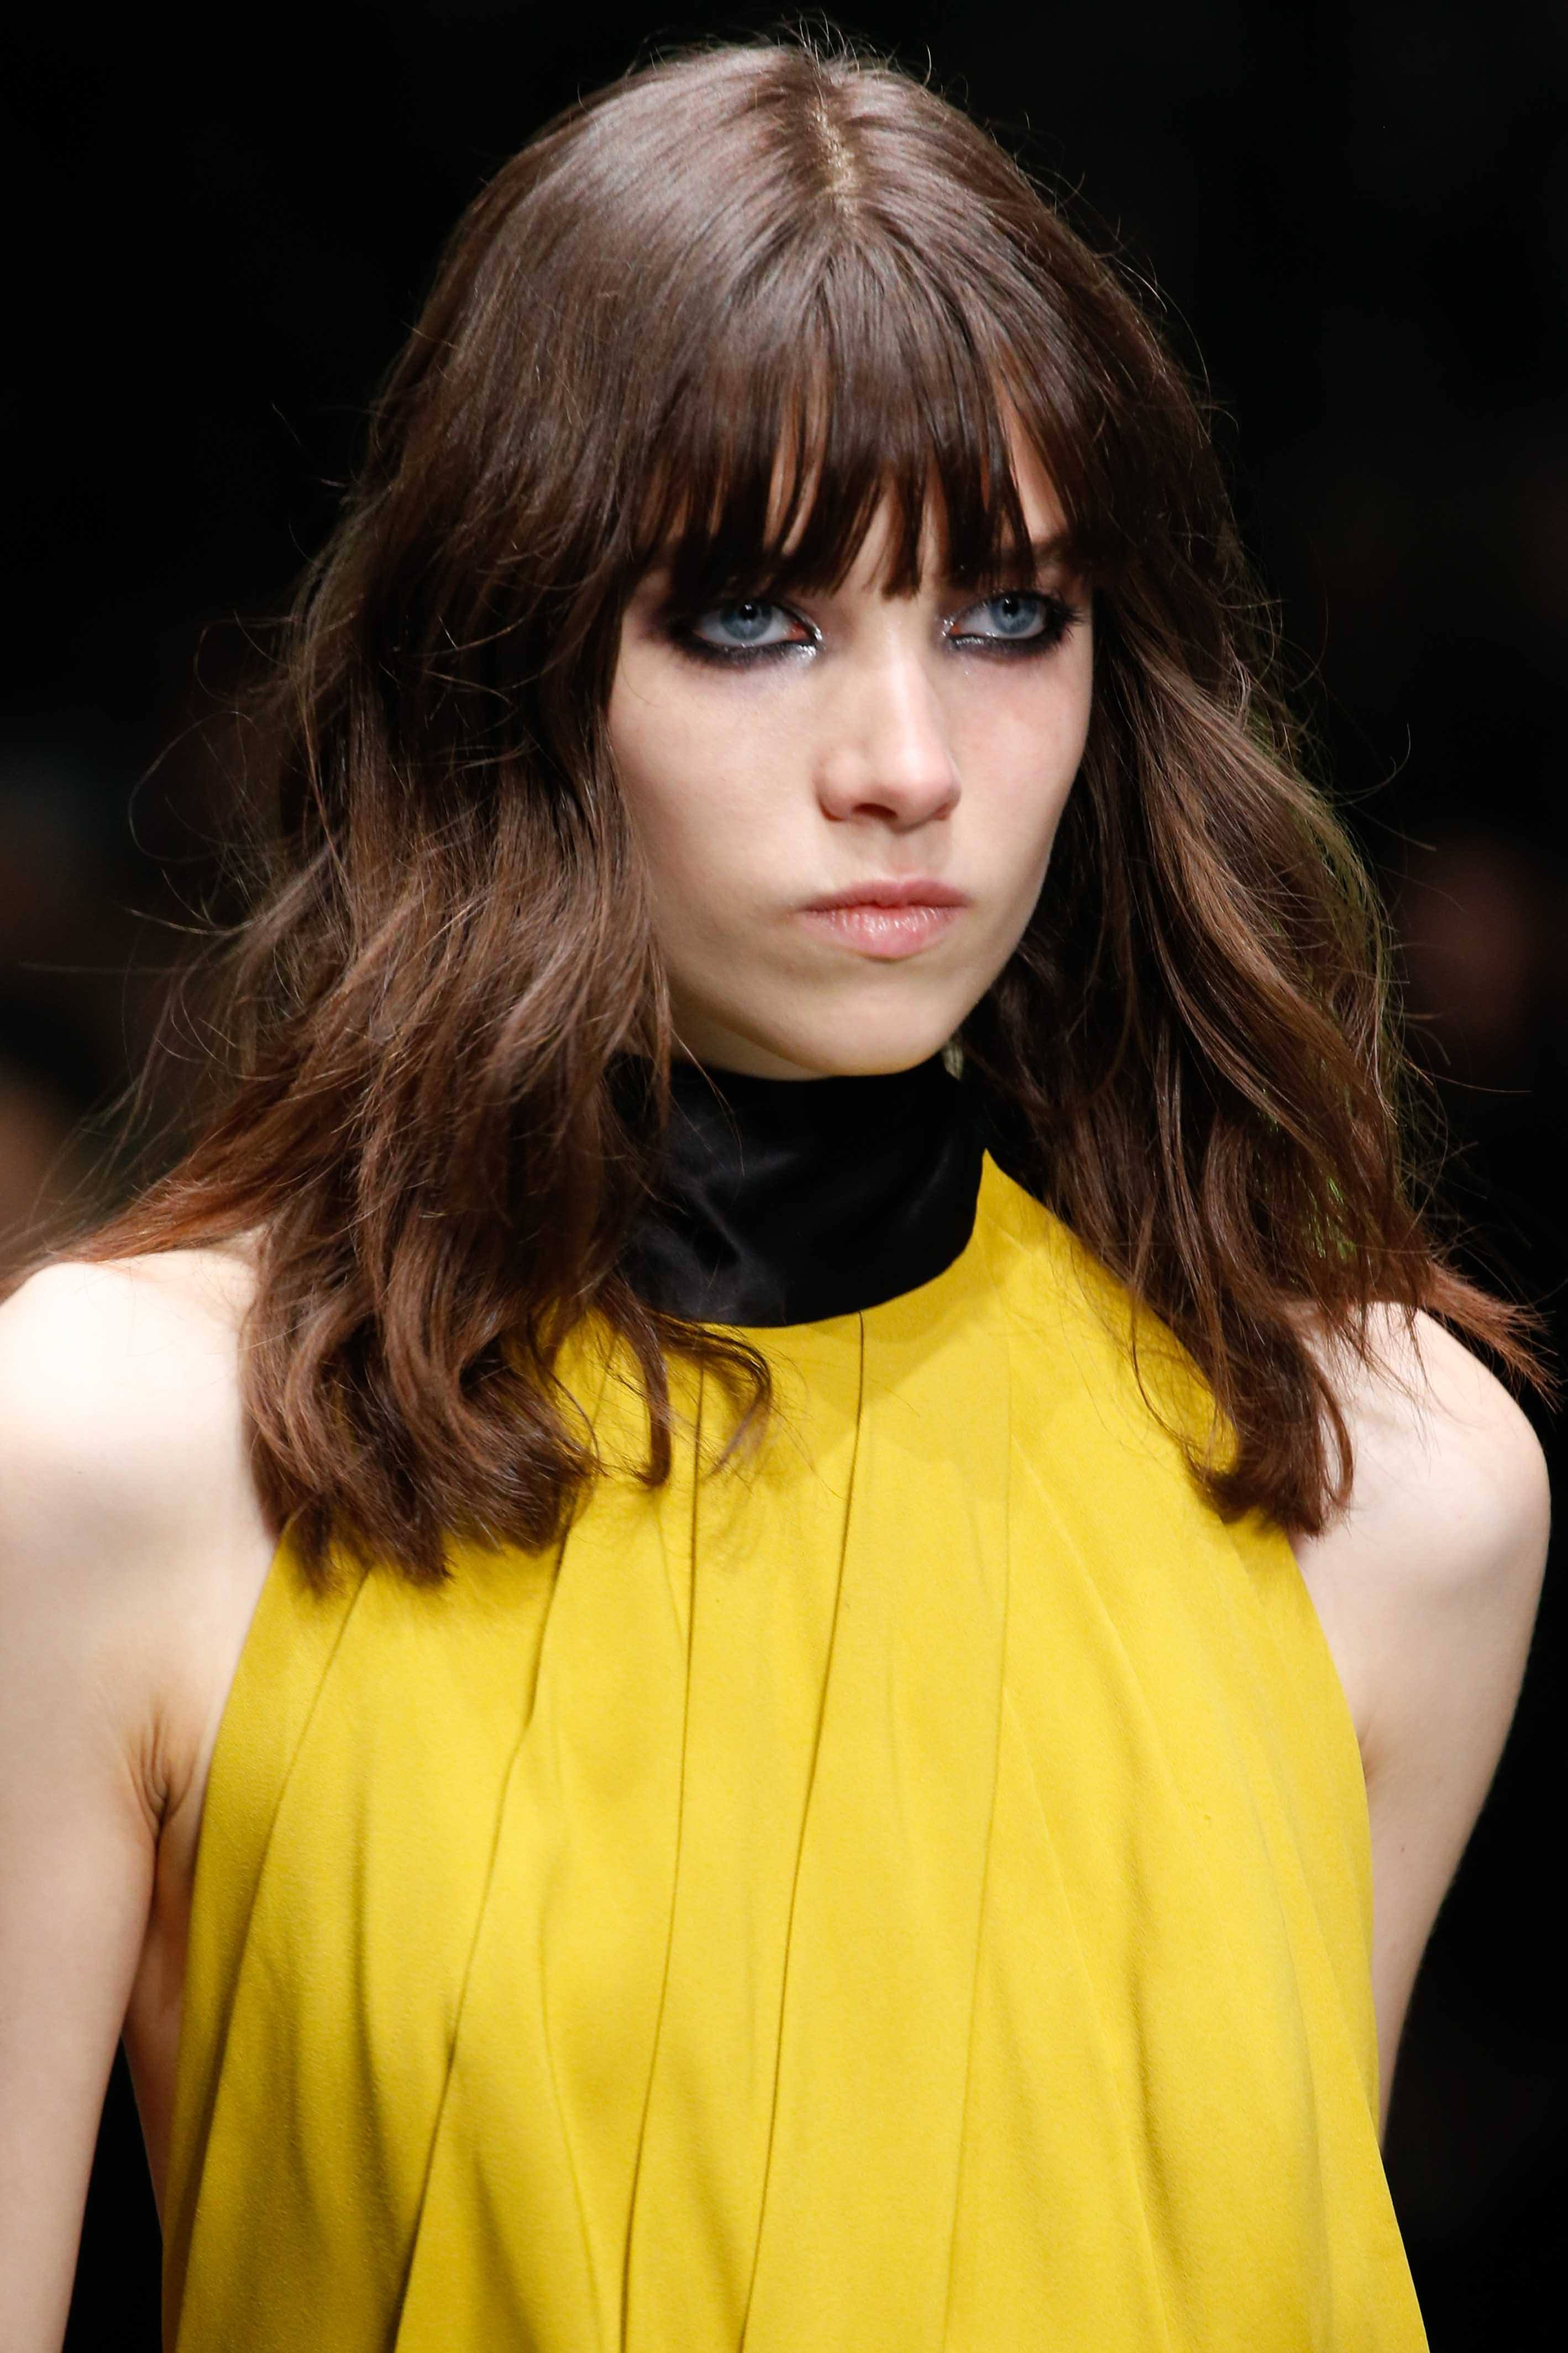 Medium Length Haircuts For Thick Hair You Should Try Now